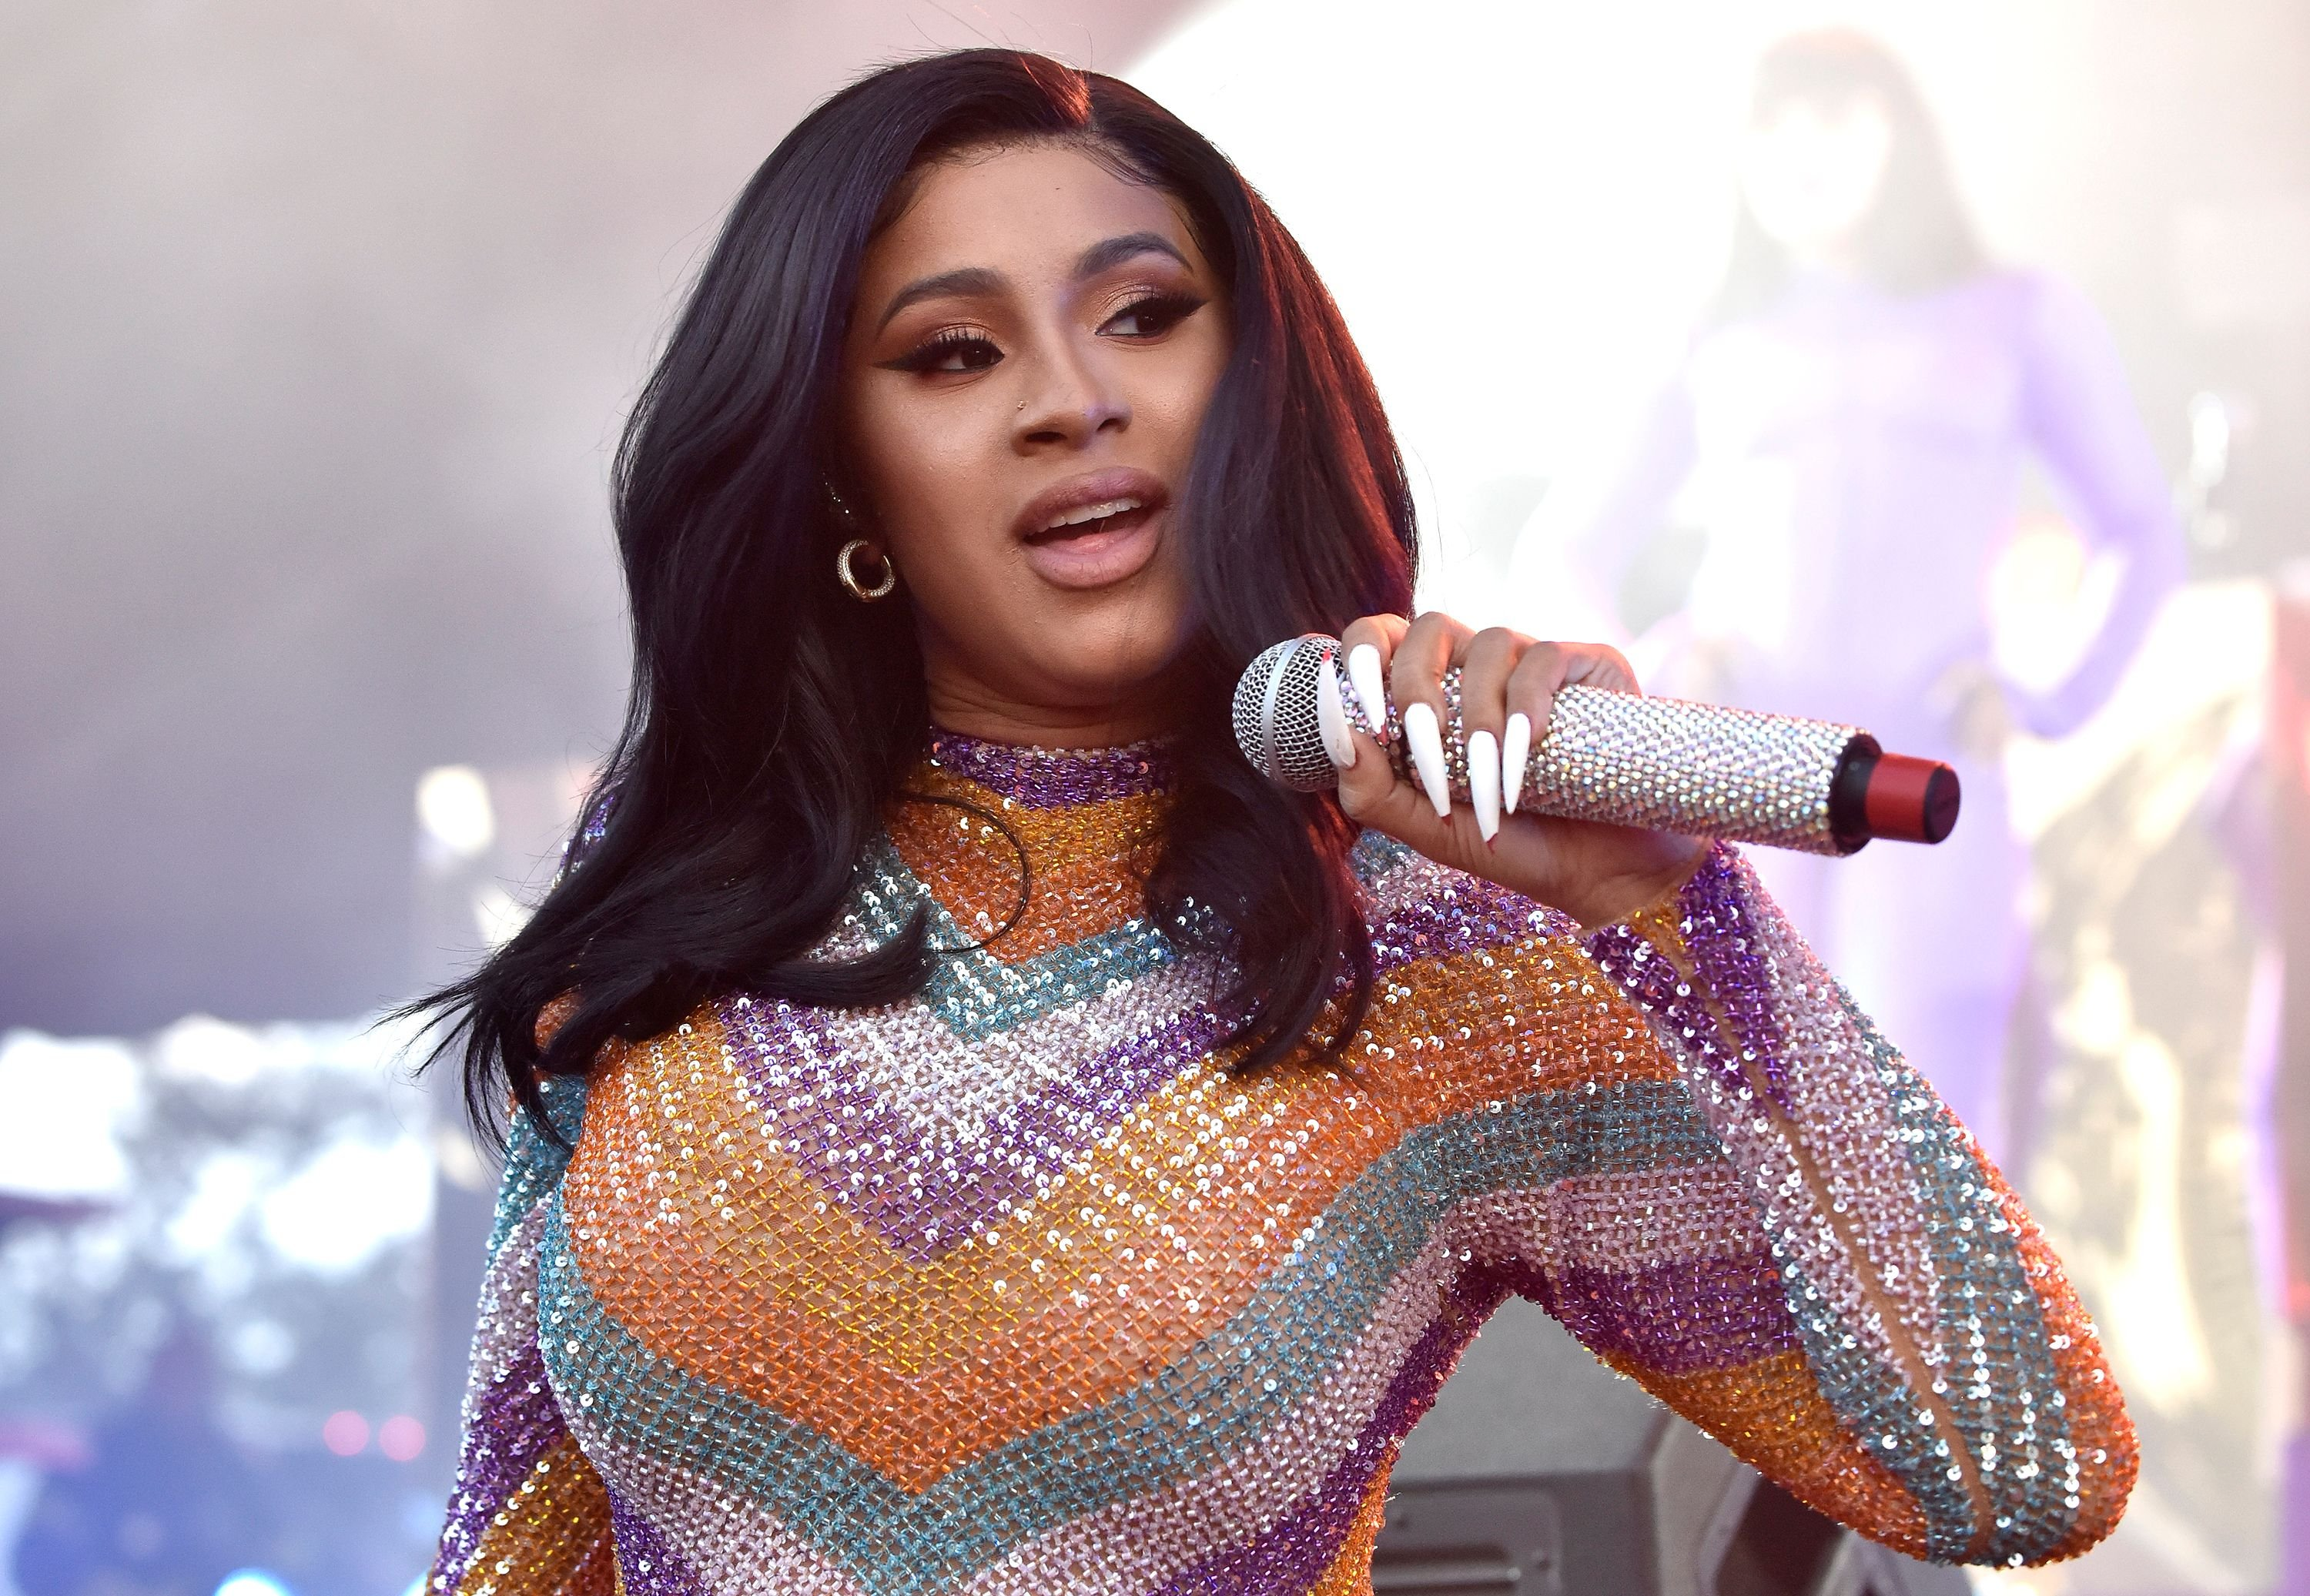 Cardi B performing at the 2019 Bonnaroo Music & Arts Festival on June 16, 2019 | Photo: Getty Images